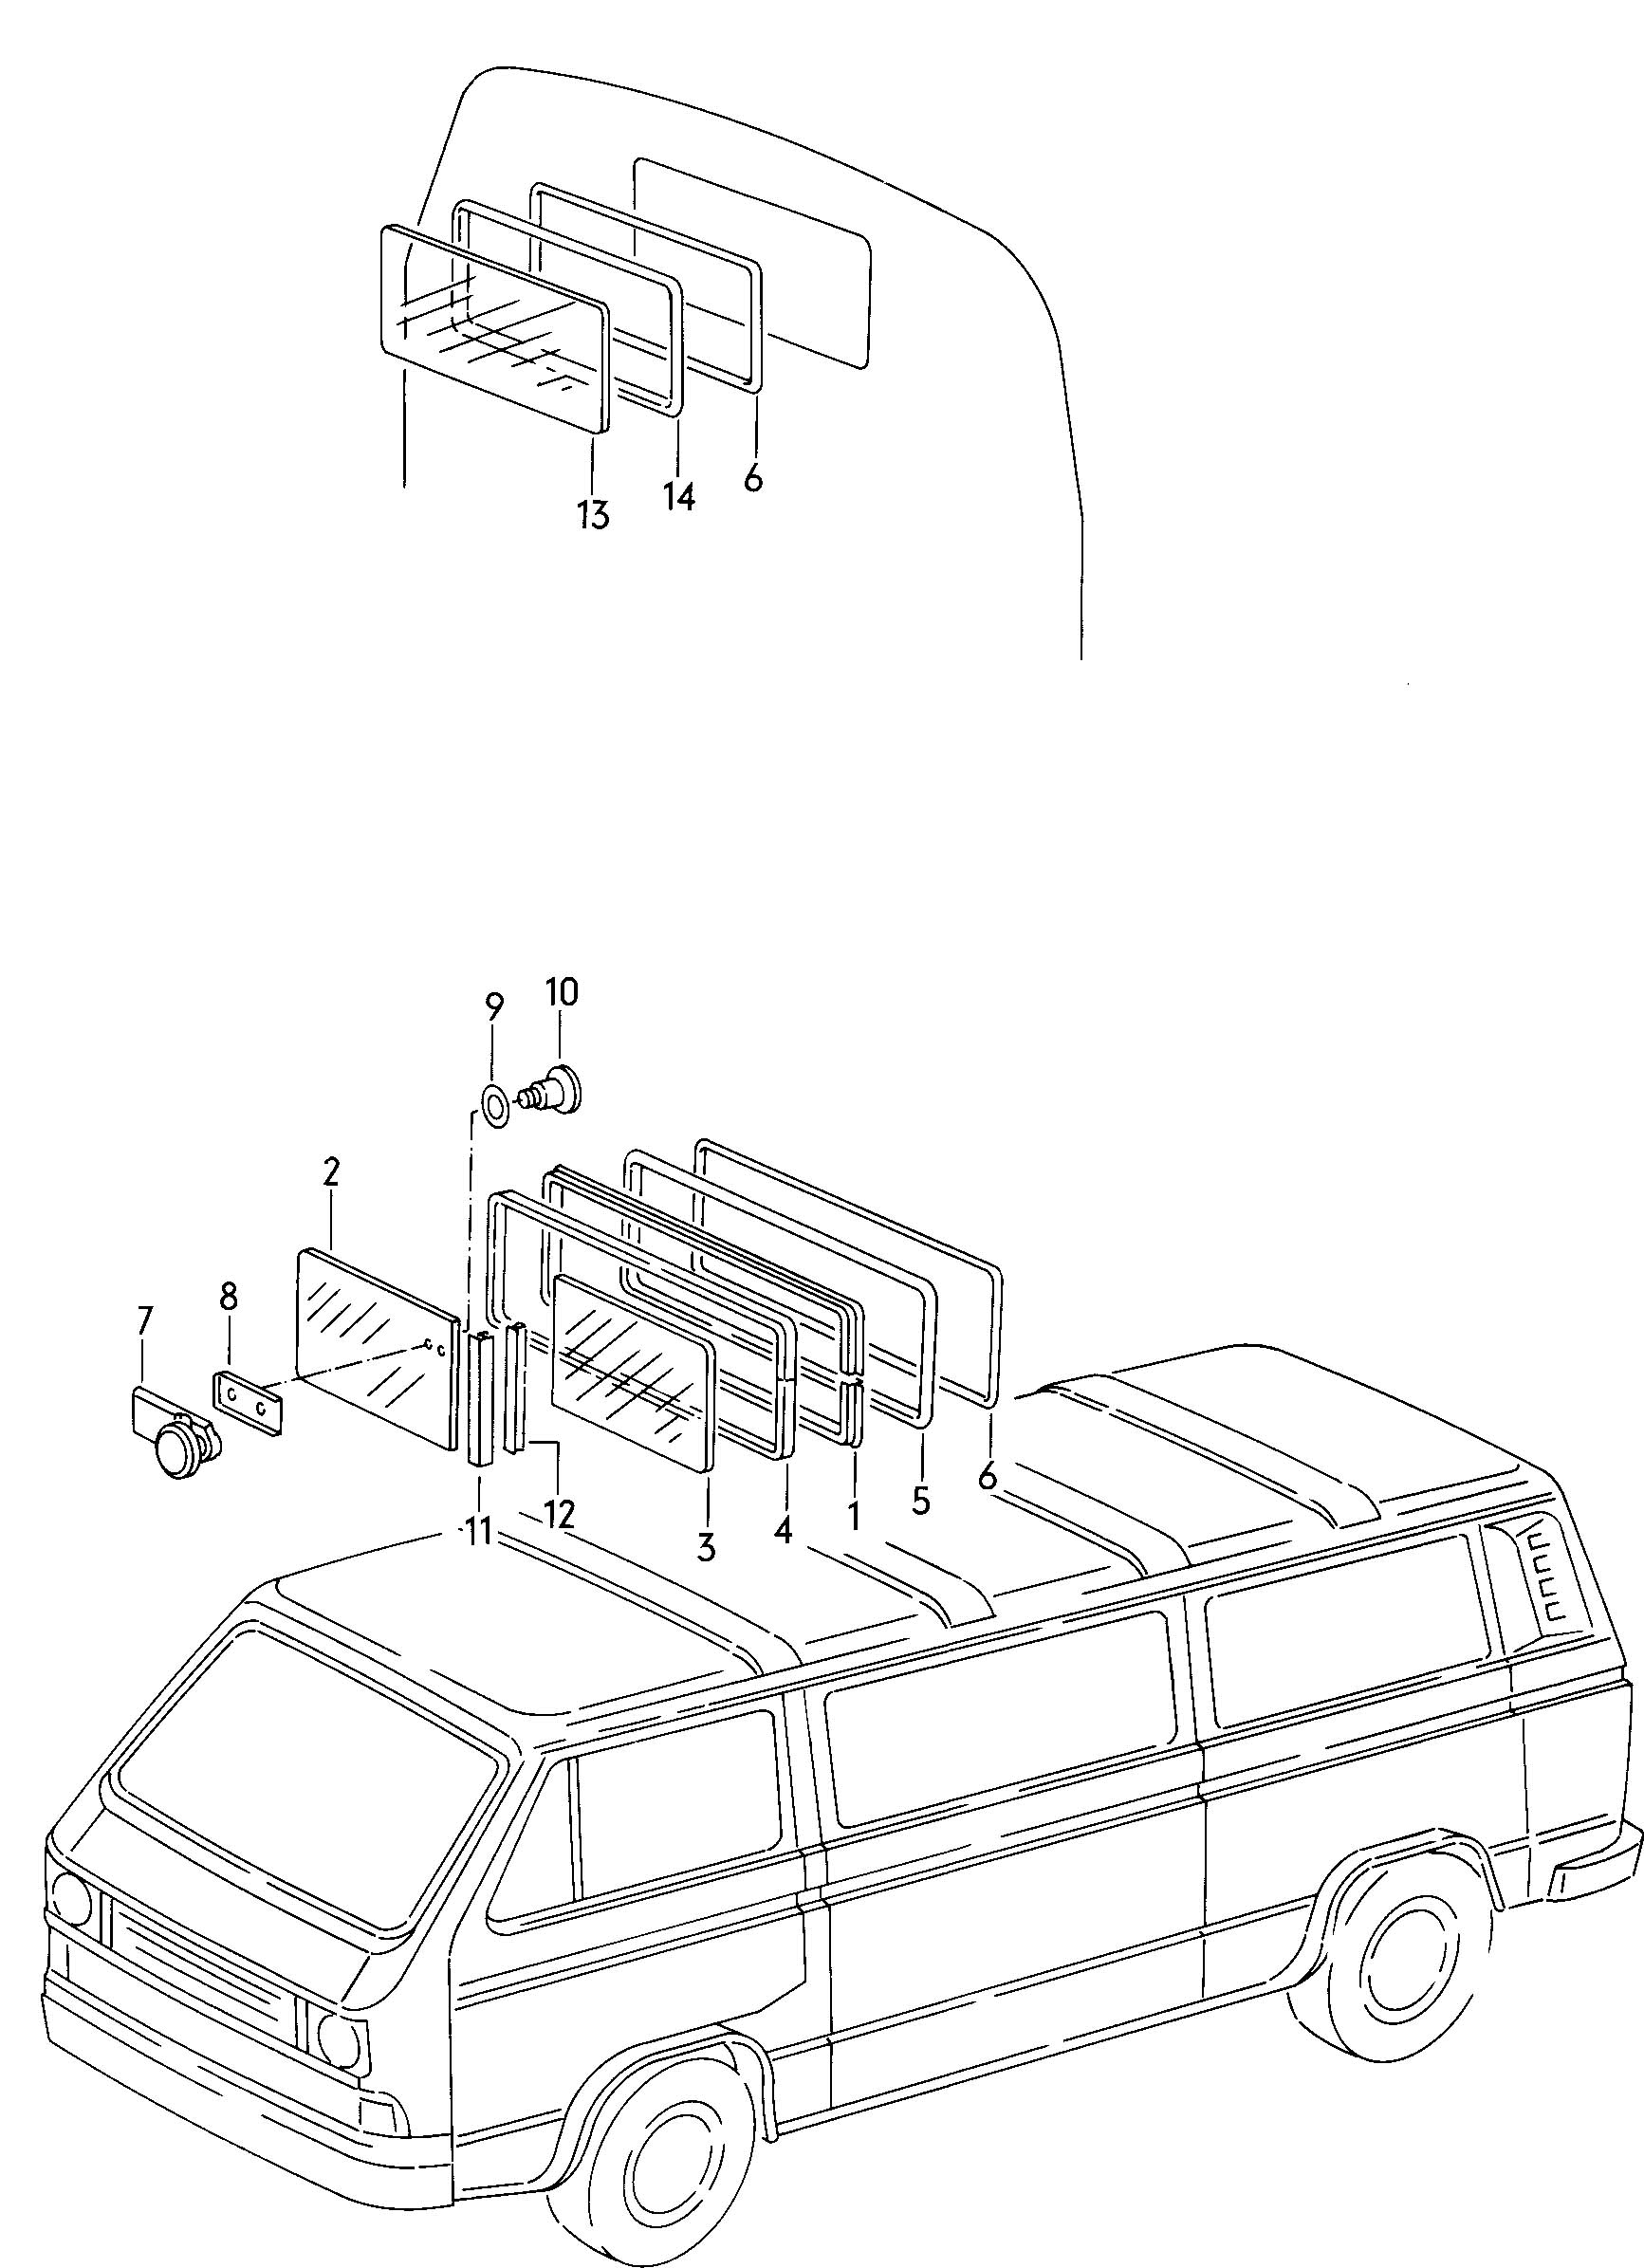 1991 Vw Vanagon Wiring Diagram moreover Ps Mmp also Esqvw1 additionally Differentials moreover ShowAssembly. on 1986 volkswagen vanagon